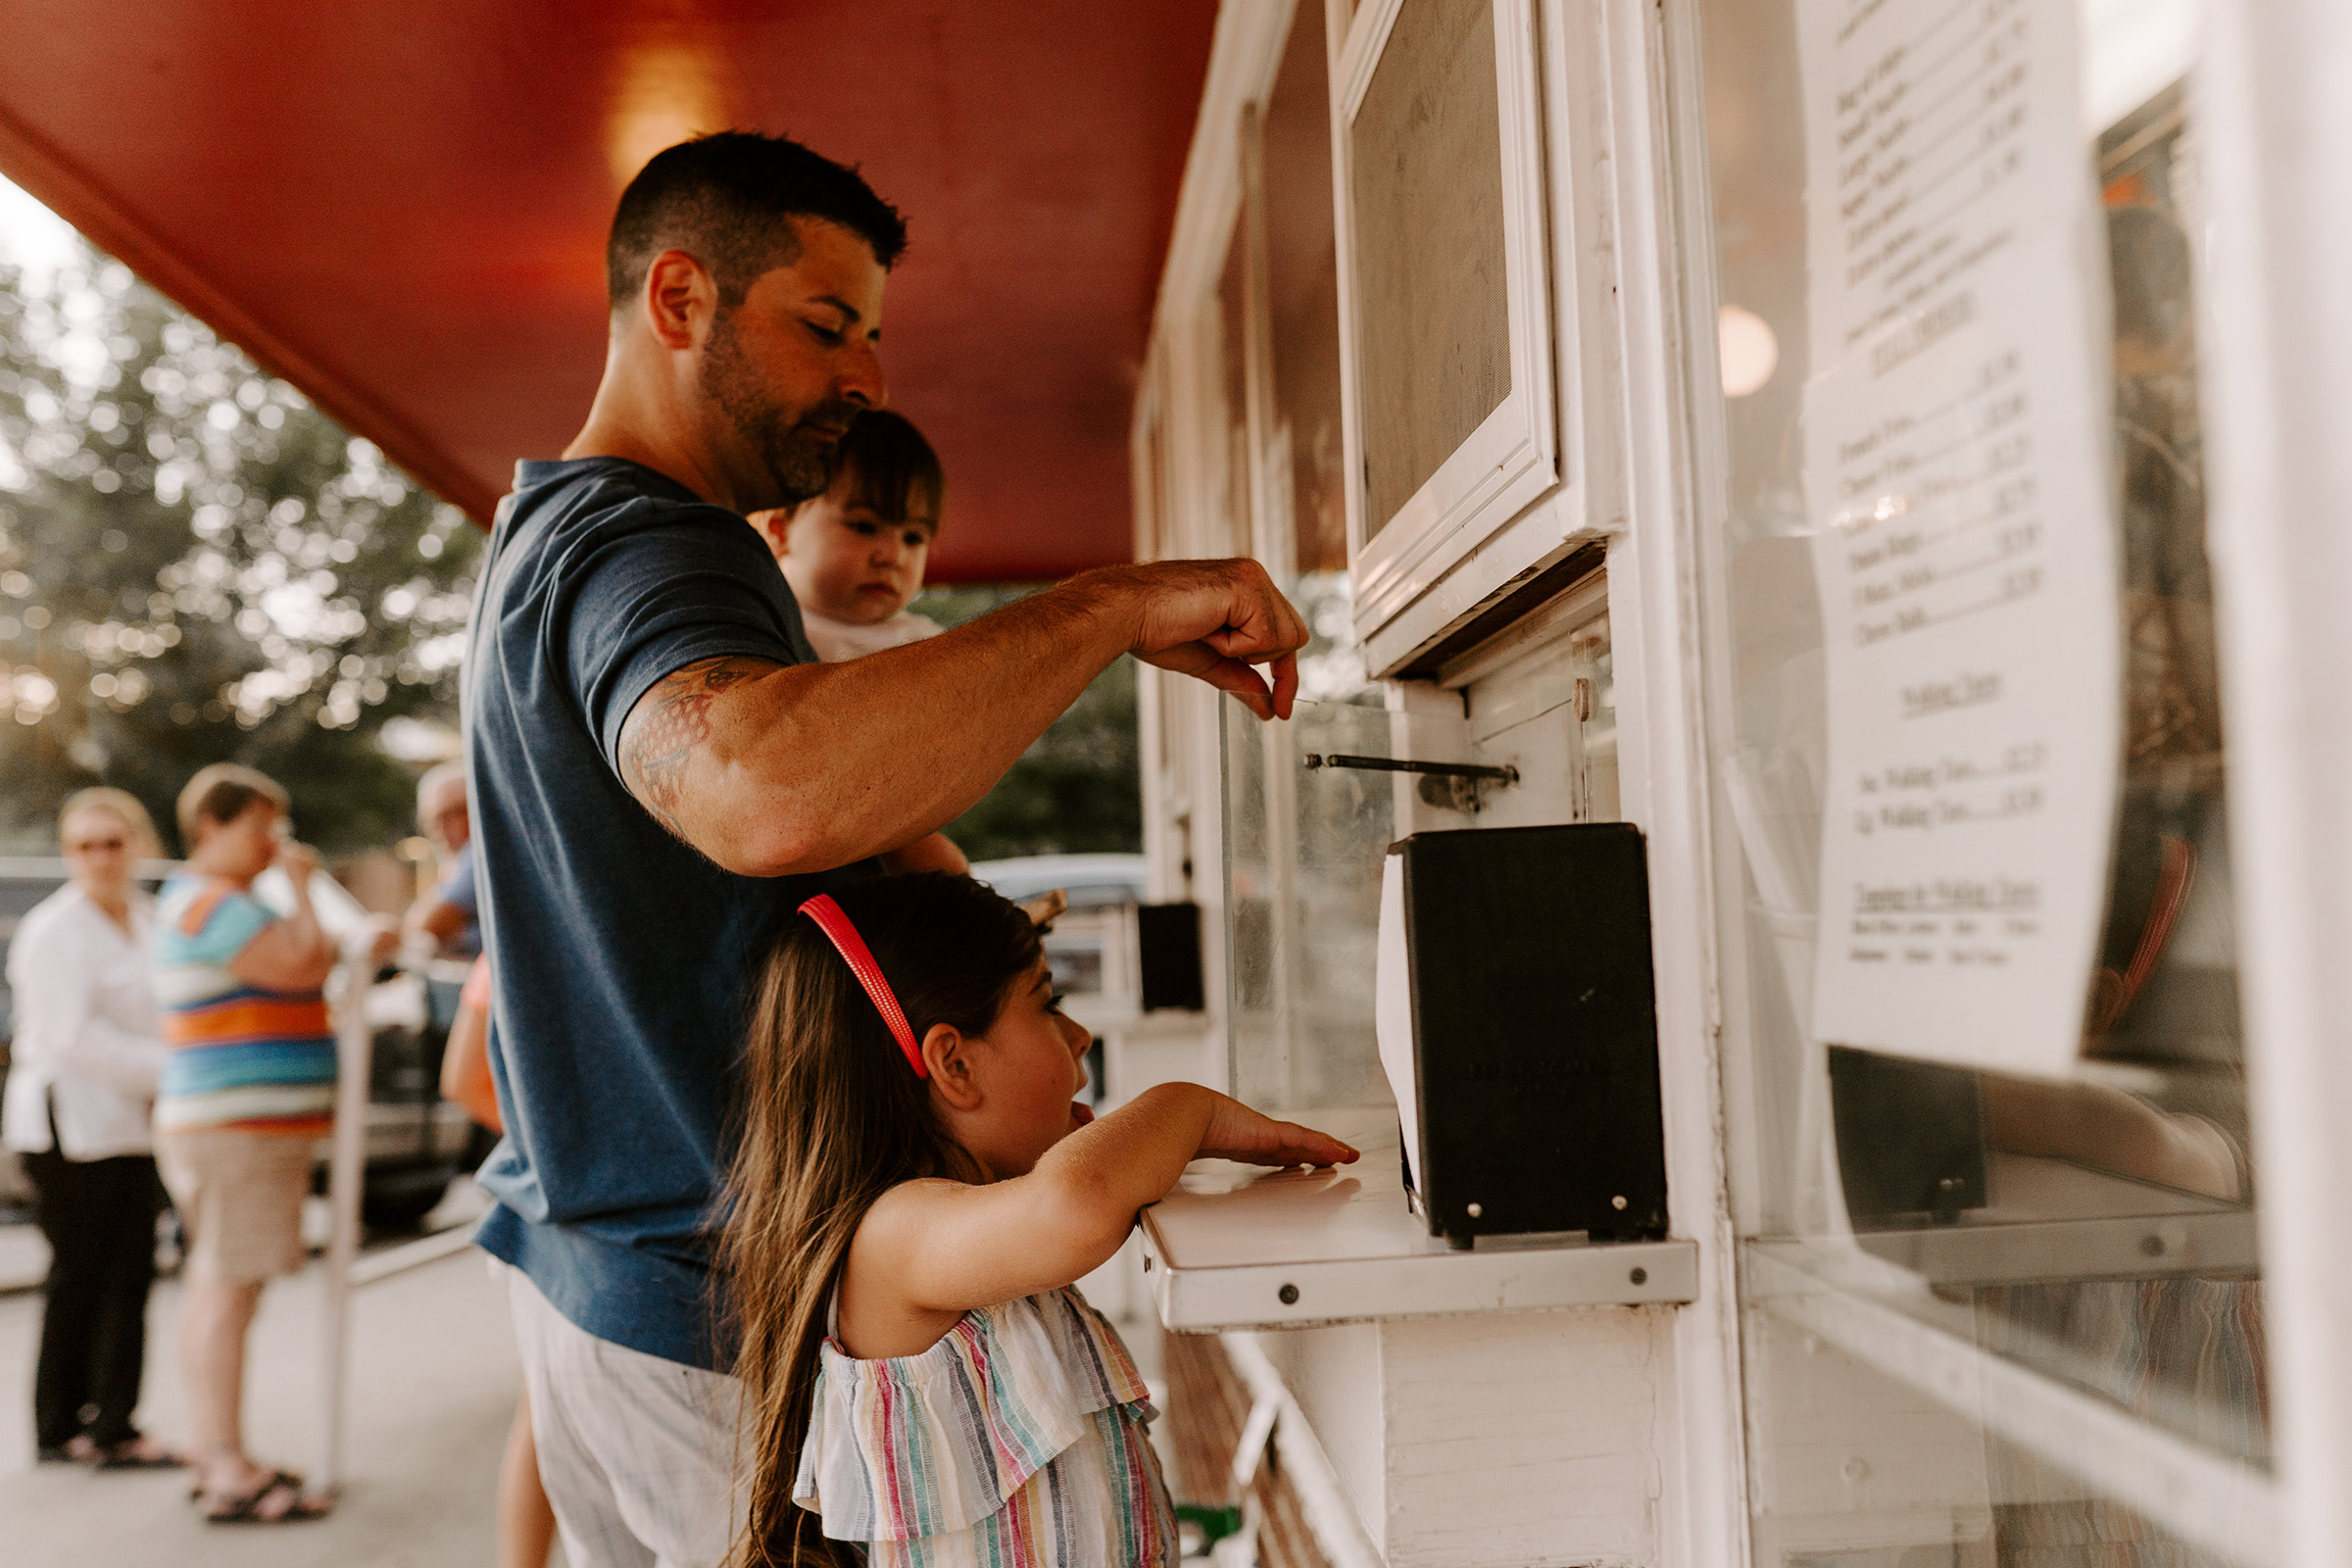 natale-family-ordering-ice-cream-with-dad-and-kids-at-frostees-winterset-iowa-raelyn-ramey-photography-185.jpg